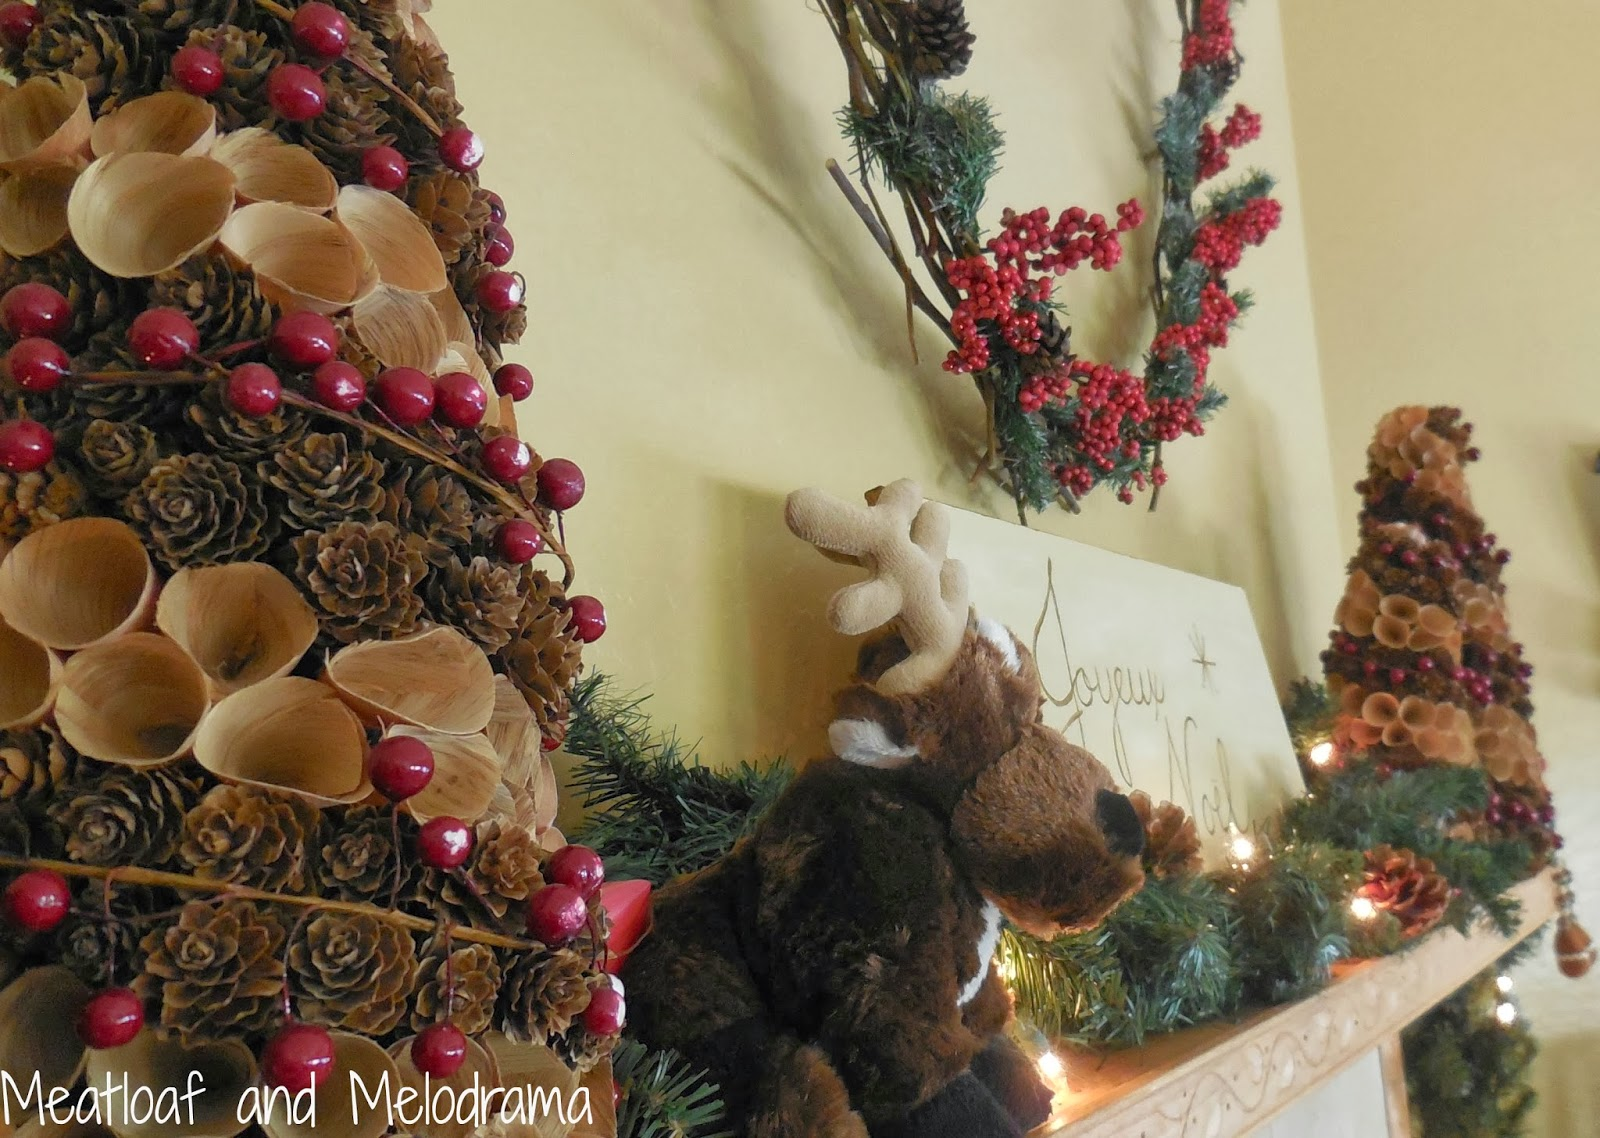 pinecone trees, deer on fireplace, rustic Christmas mantel decorations